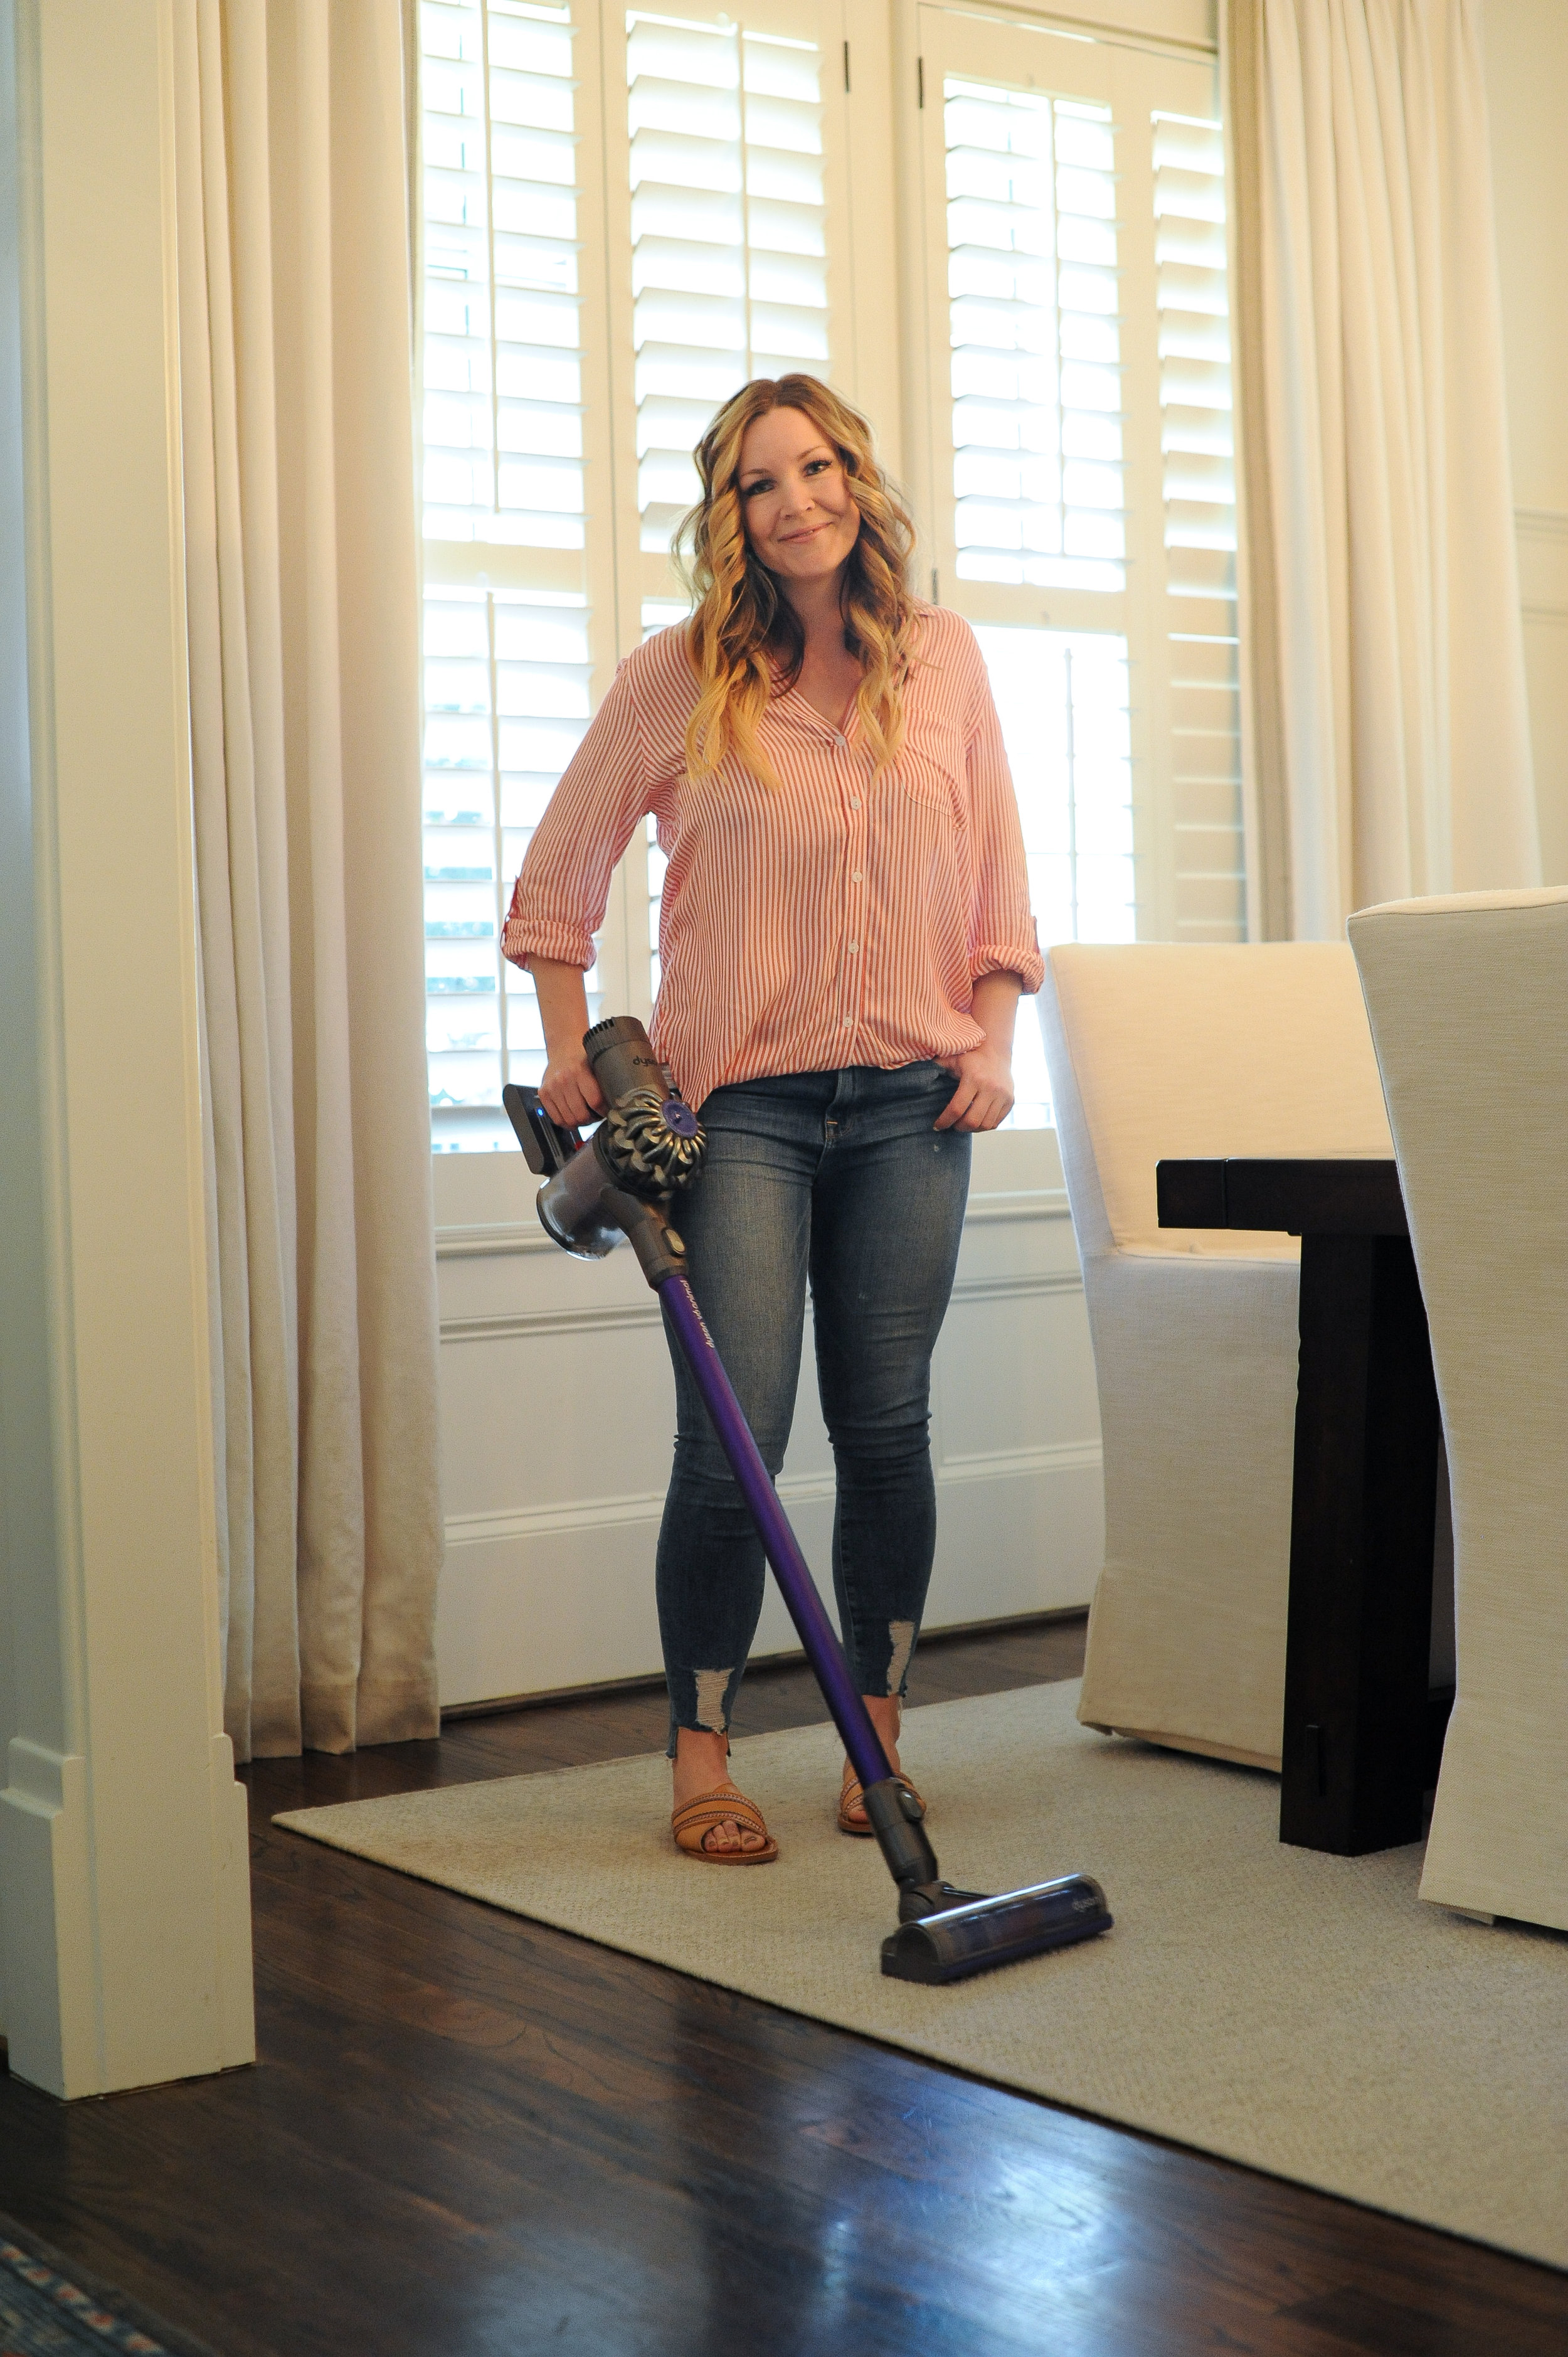 striped top    |    good american denim    |    target sandals    |    dyson cordless vacuum    (OTHERWISE KNOWN AS MY SOULMATE) |    photos by jnelly photography